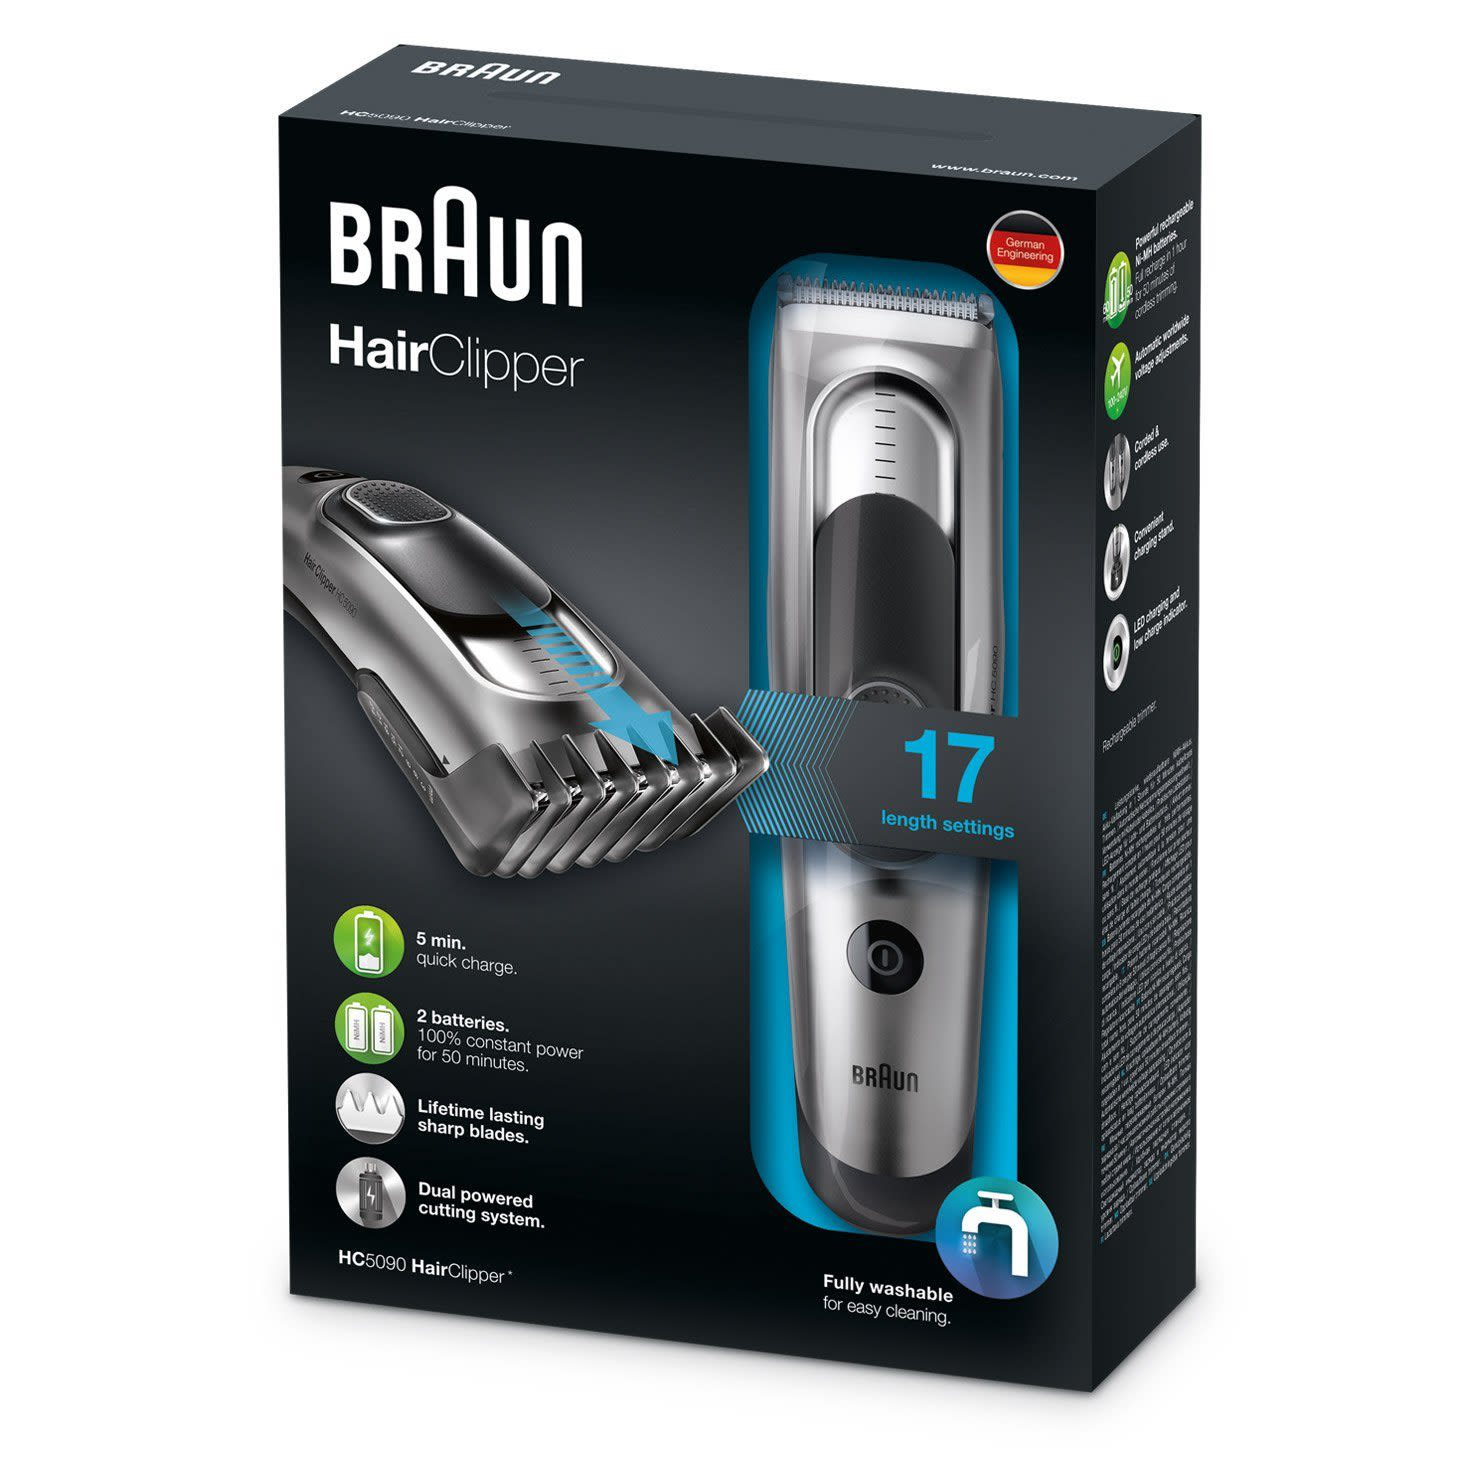 Braun Hair clipper HC5090 with 2 combs for 16 precise length settings, charging stand and pouch